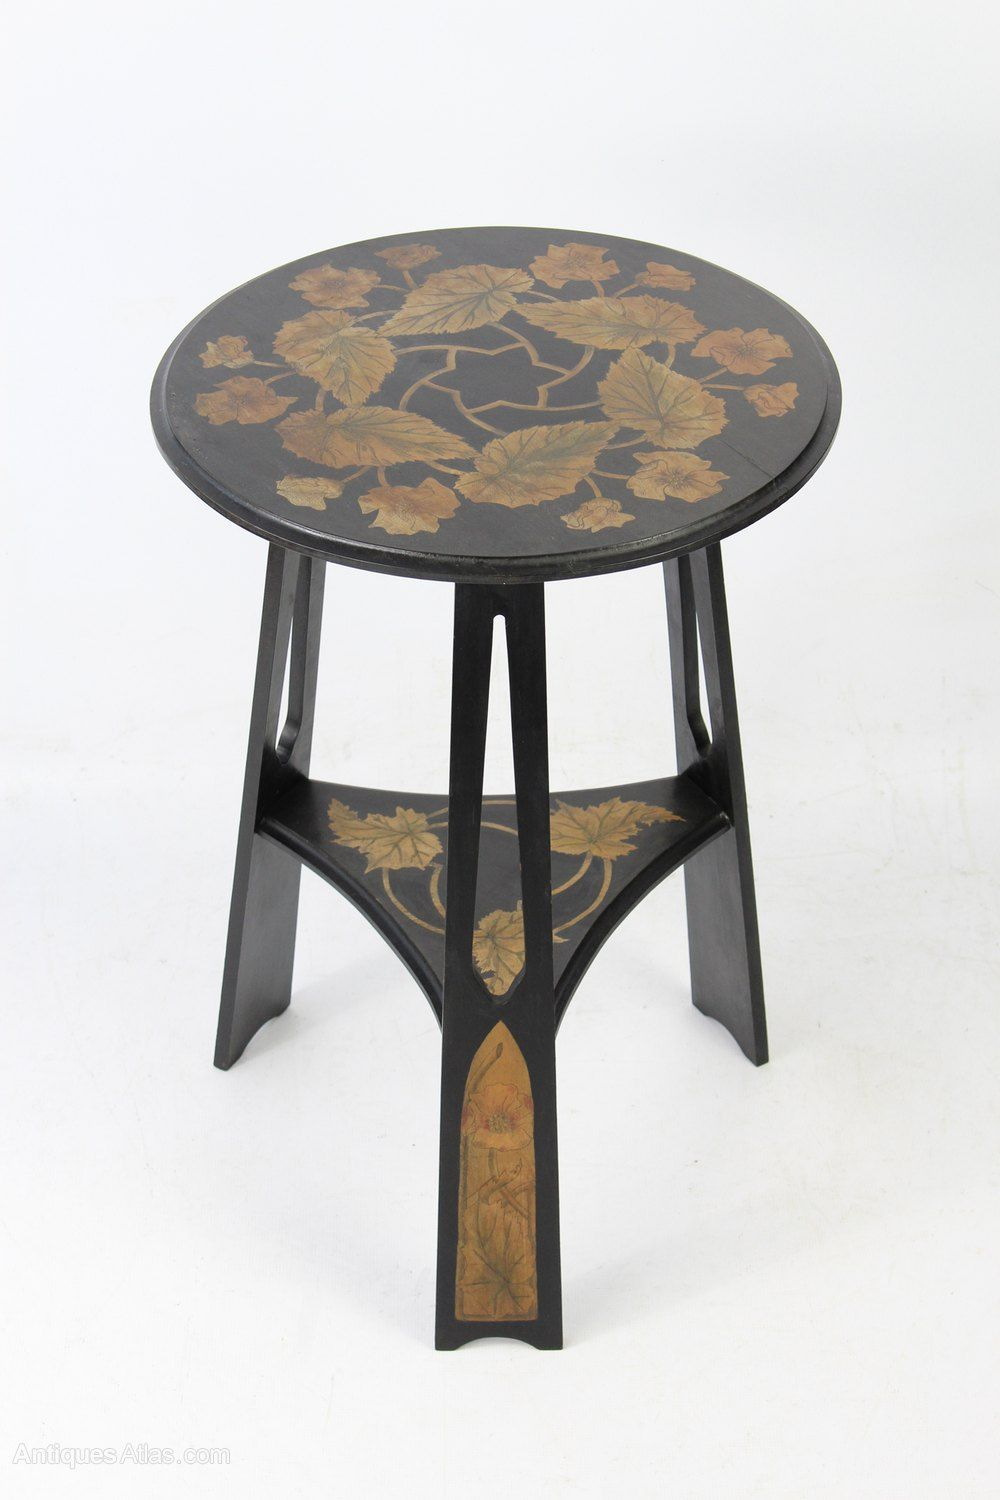 Antique Furniture Edwardian Rosewood Marquetry Window/ Coffee Table Edwardian (1901-1910)